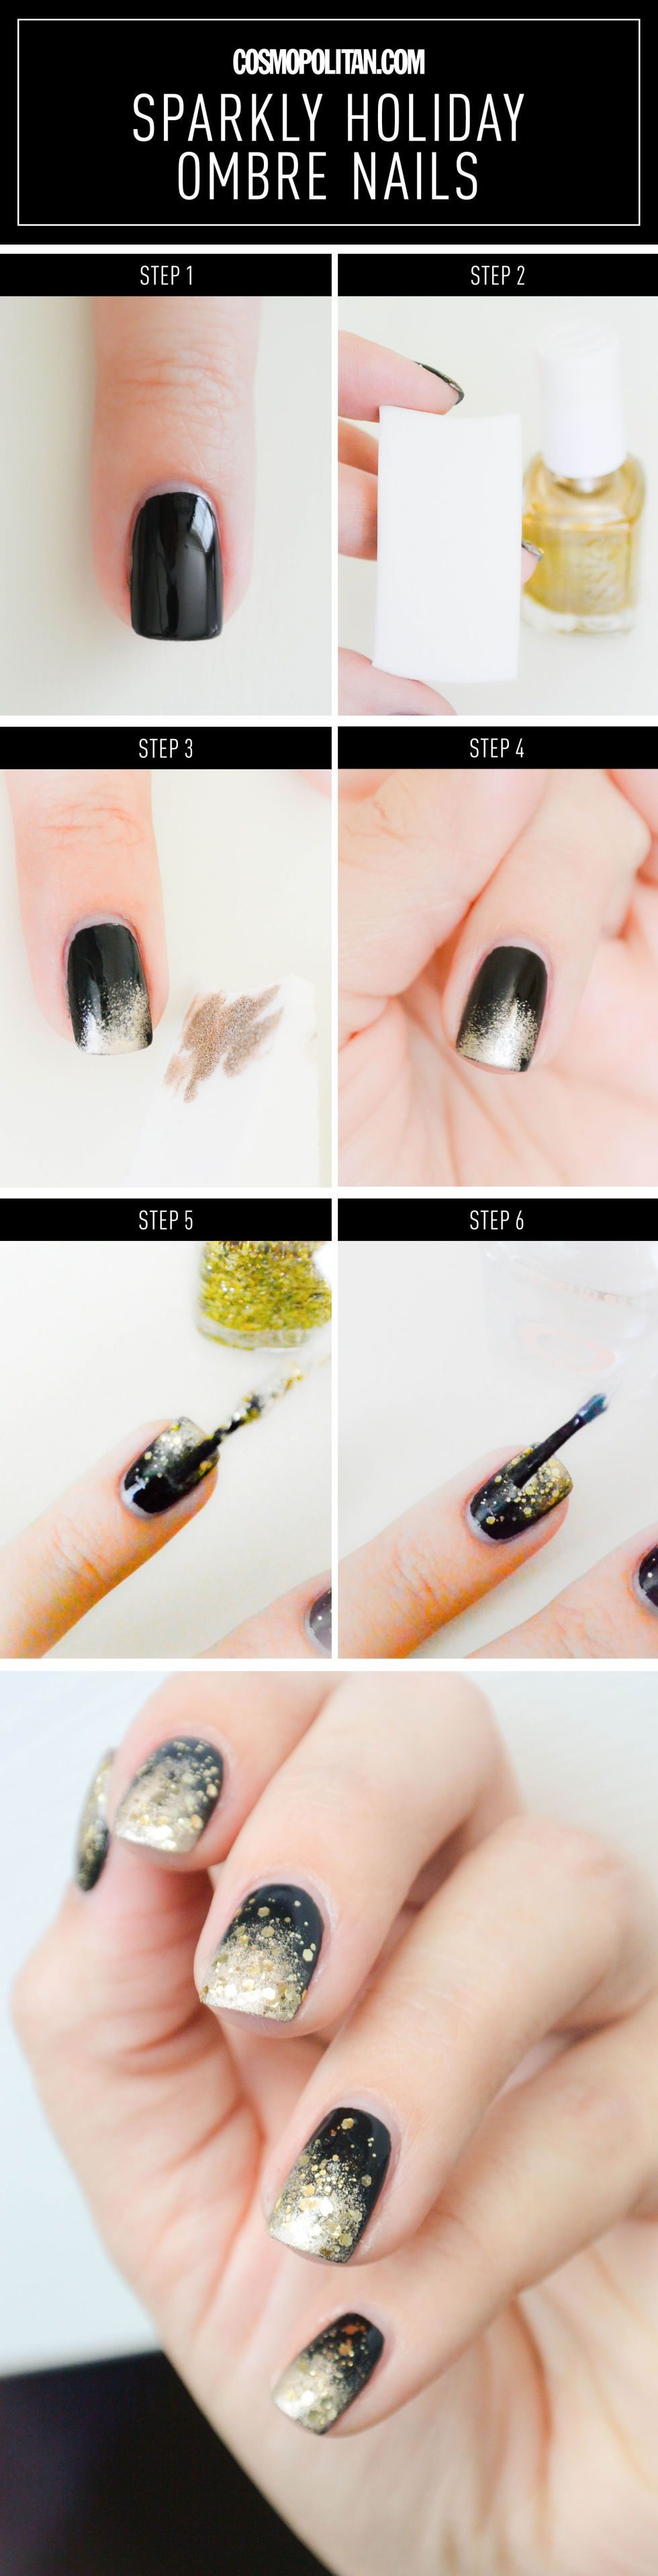 Nail Art How-To: Sparkly Black and Gold Ombr Mani   Negle ...